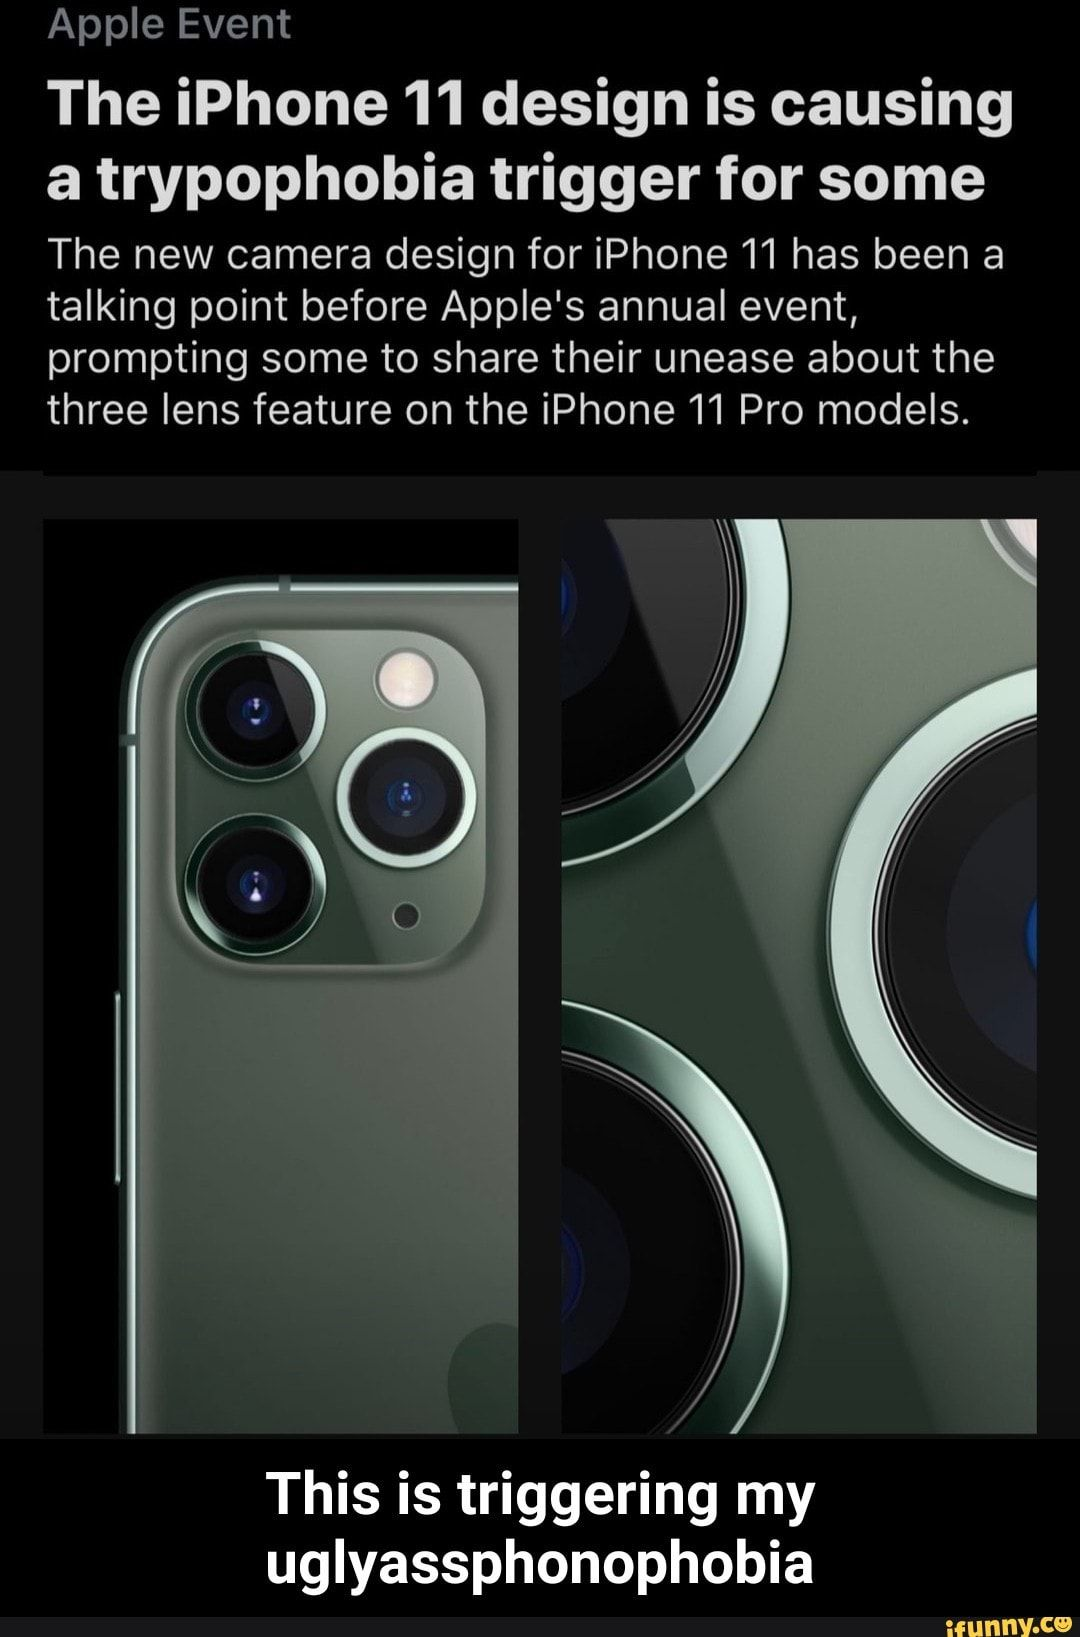 Apple Event The Iphone 11 Design Is Causing A Trypophobia Trigger For Some The New Camera Design For Iphone 11 Has Been A Talking Point Before Apple S Annual Ev In 2020 Trypophobia Iphone 11 Iphone